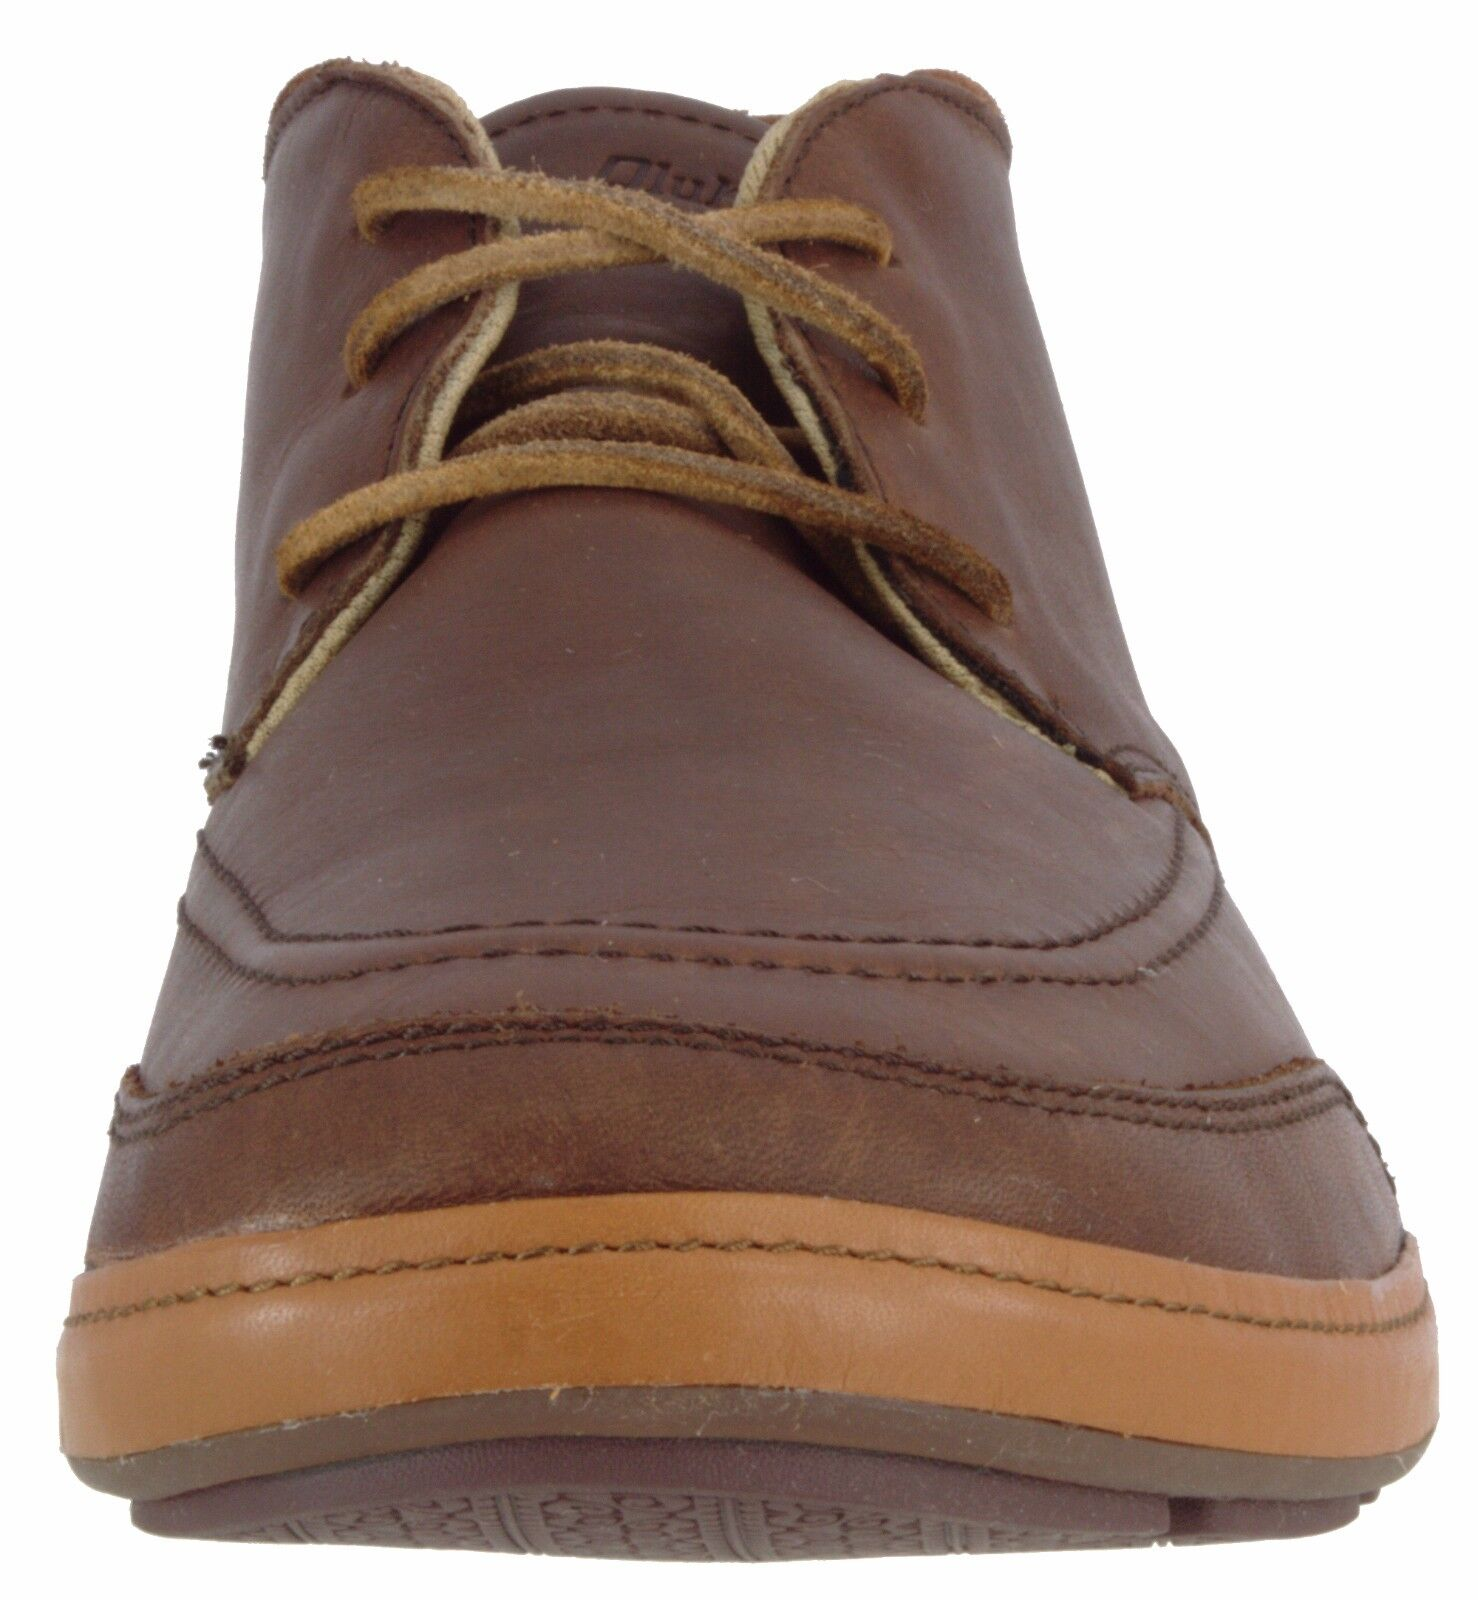 OLUKAI SAMPLE 10251 MEN'S PALA PALA PALA LACE UP WATERPROOF LEATHER BOOTS US 10 EUR 43 adce3b